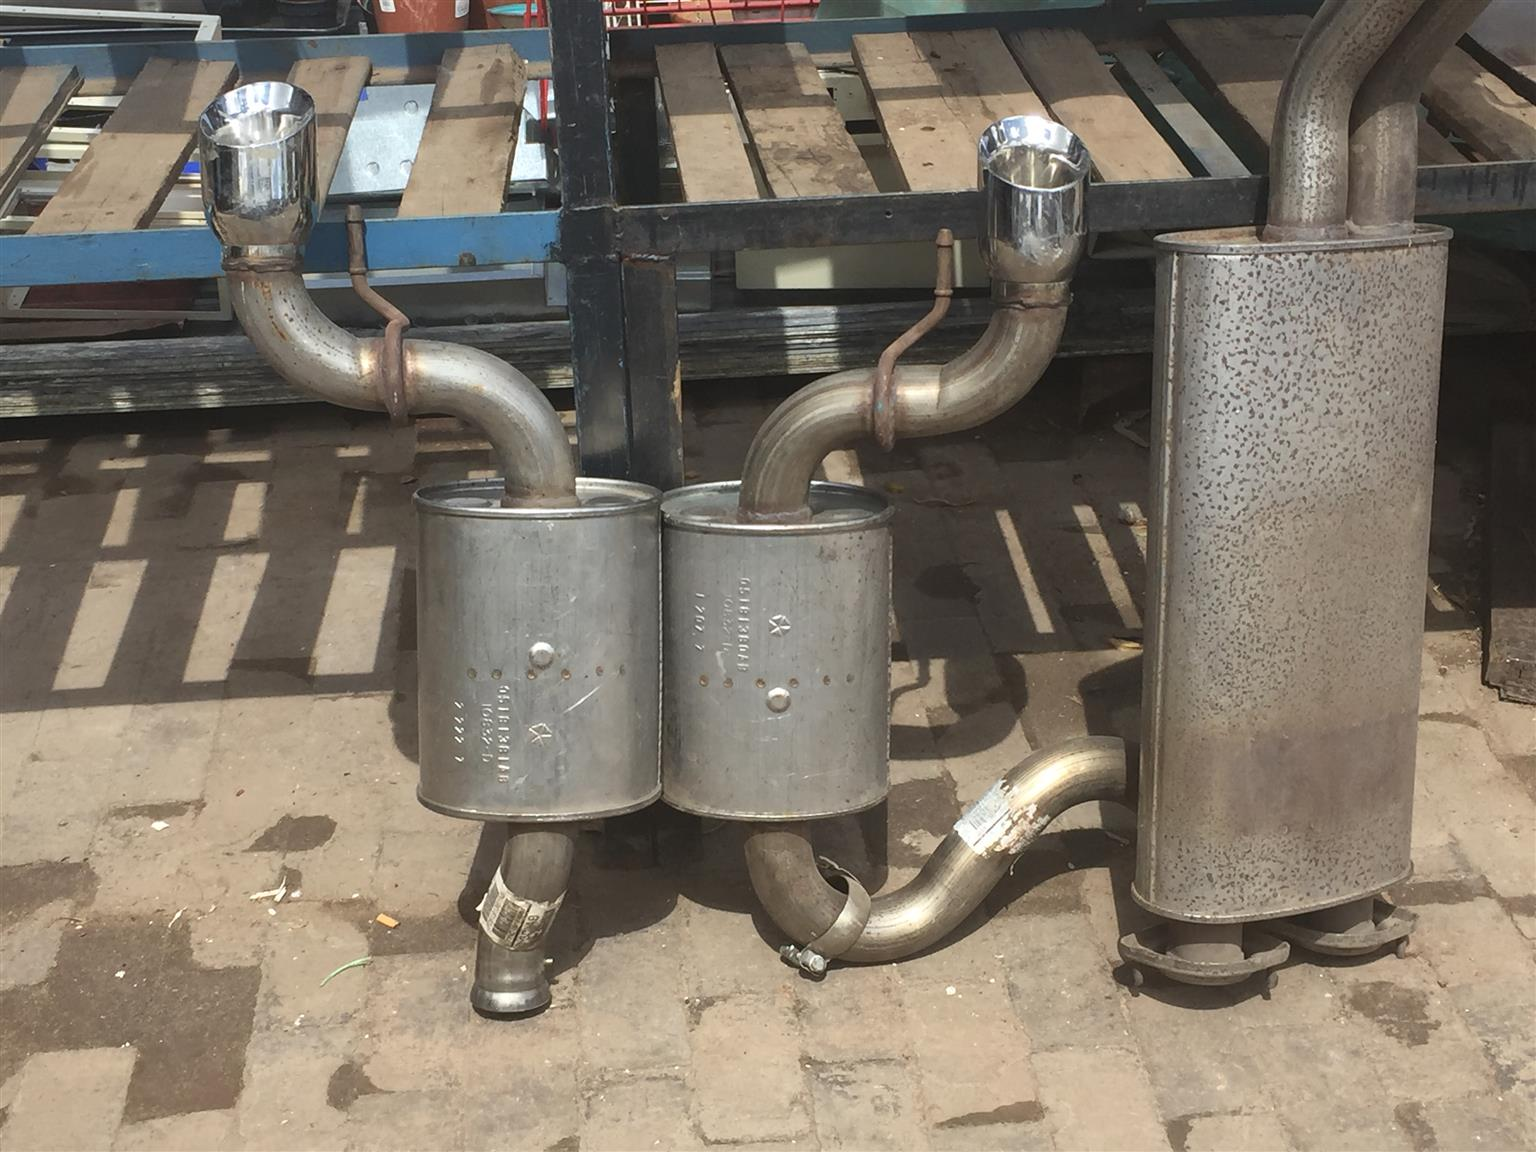 2008 Jeep SRT 8 Complete unused Exhaust system & airbox